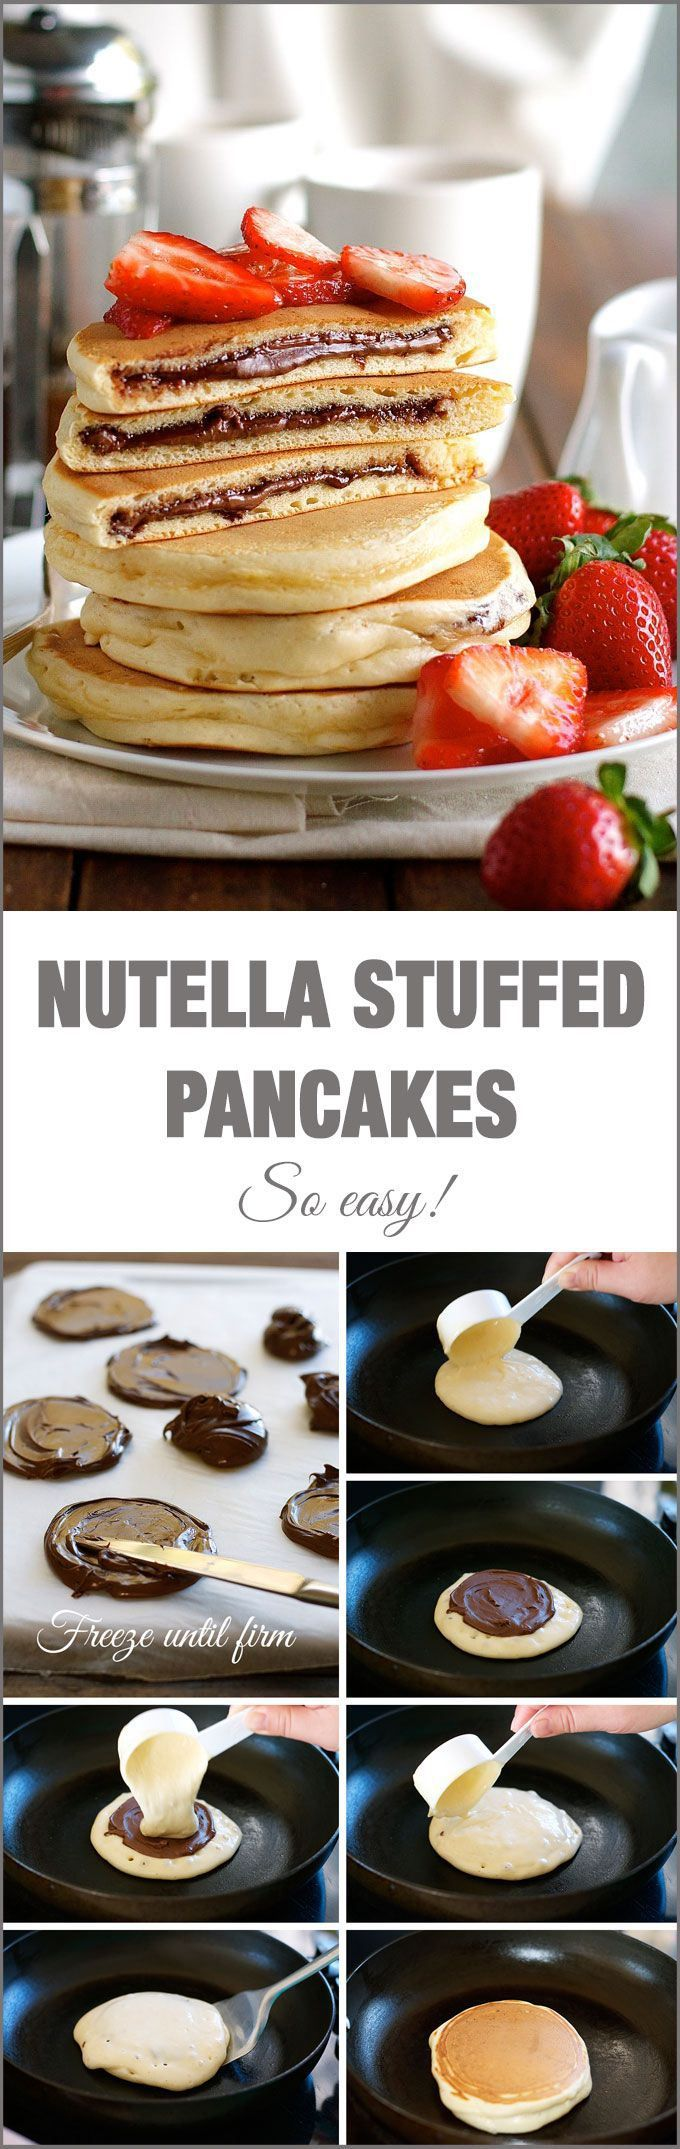 NUTELLA STUFFED PANCAKES - Pancakes stuffed with Nutella! Best eaten warm but still fabulous at room temperature. Great treat for special occasions! (Sweet Recipes For Kids)